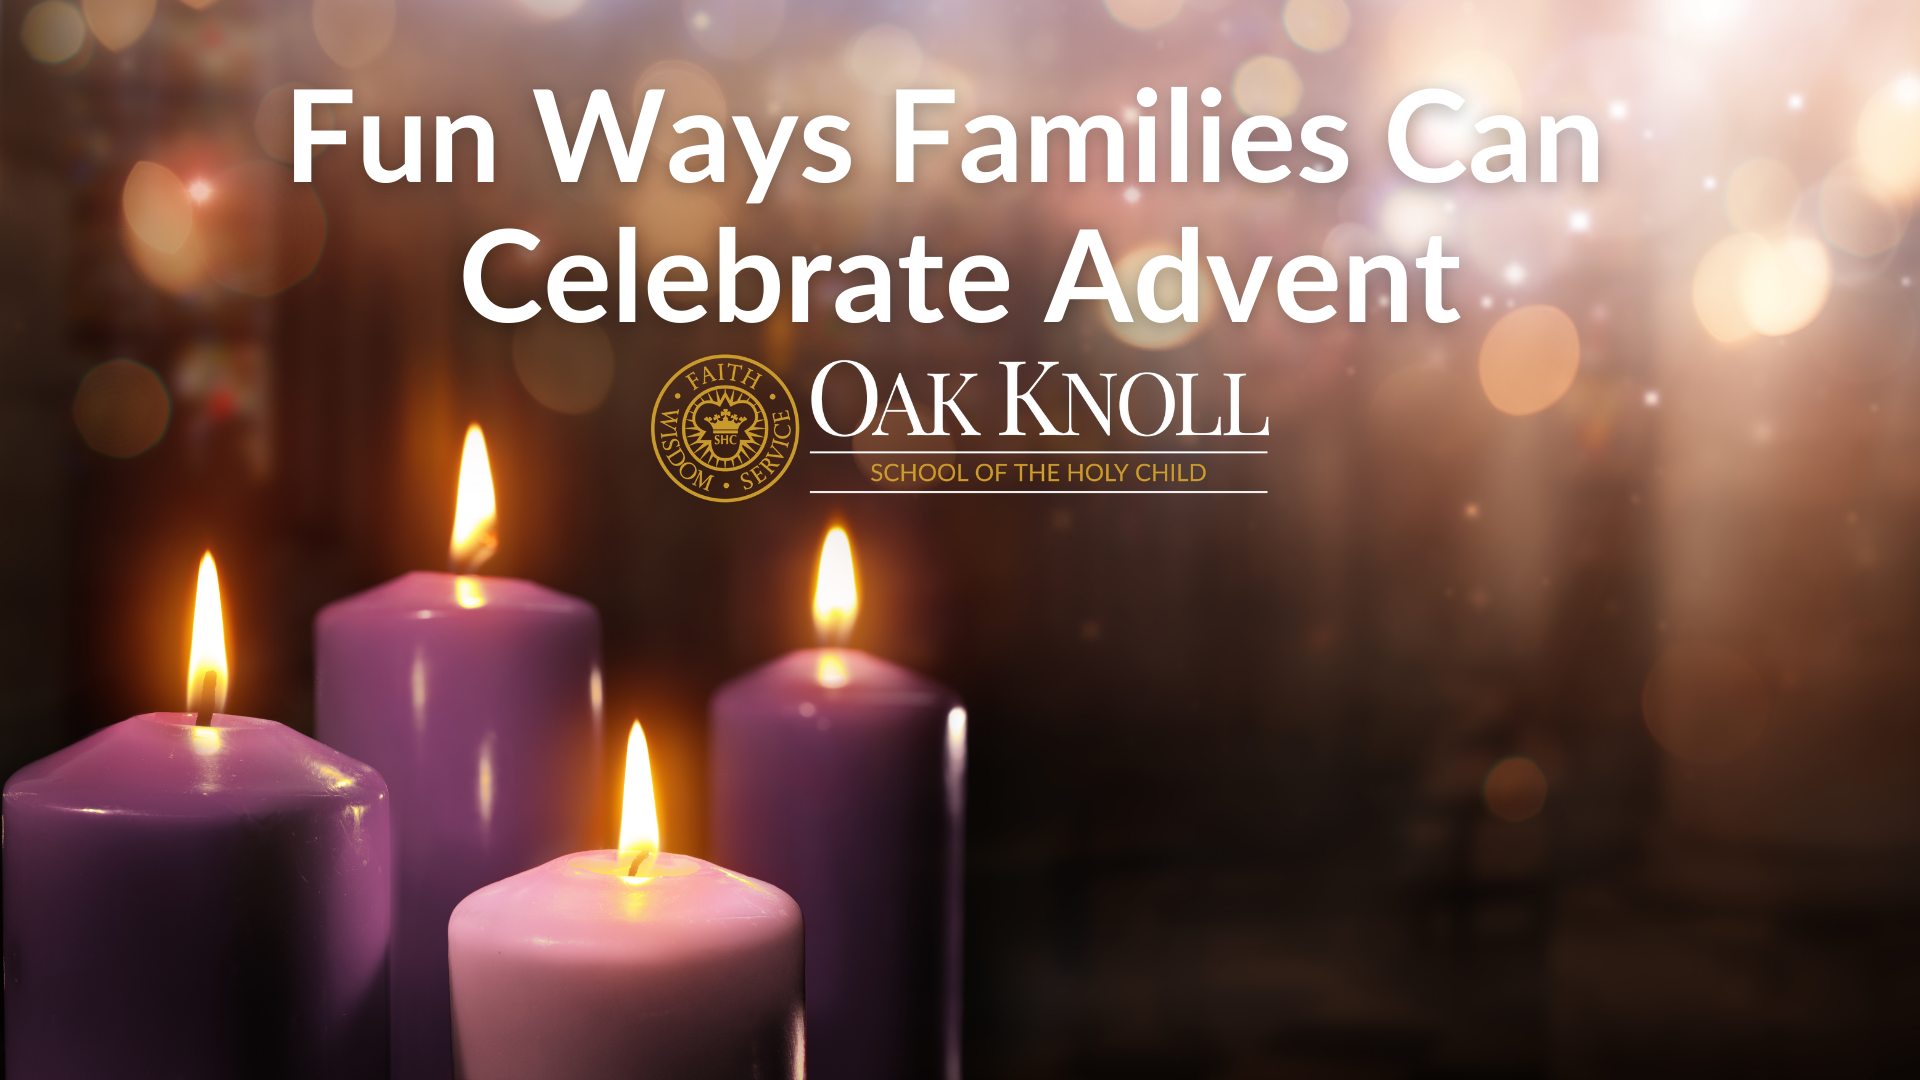 Fun Ways Families Can Celebrate Advent